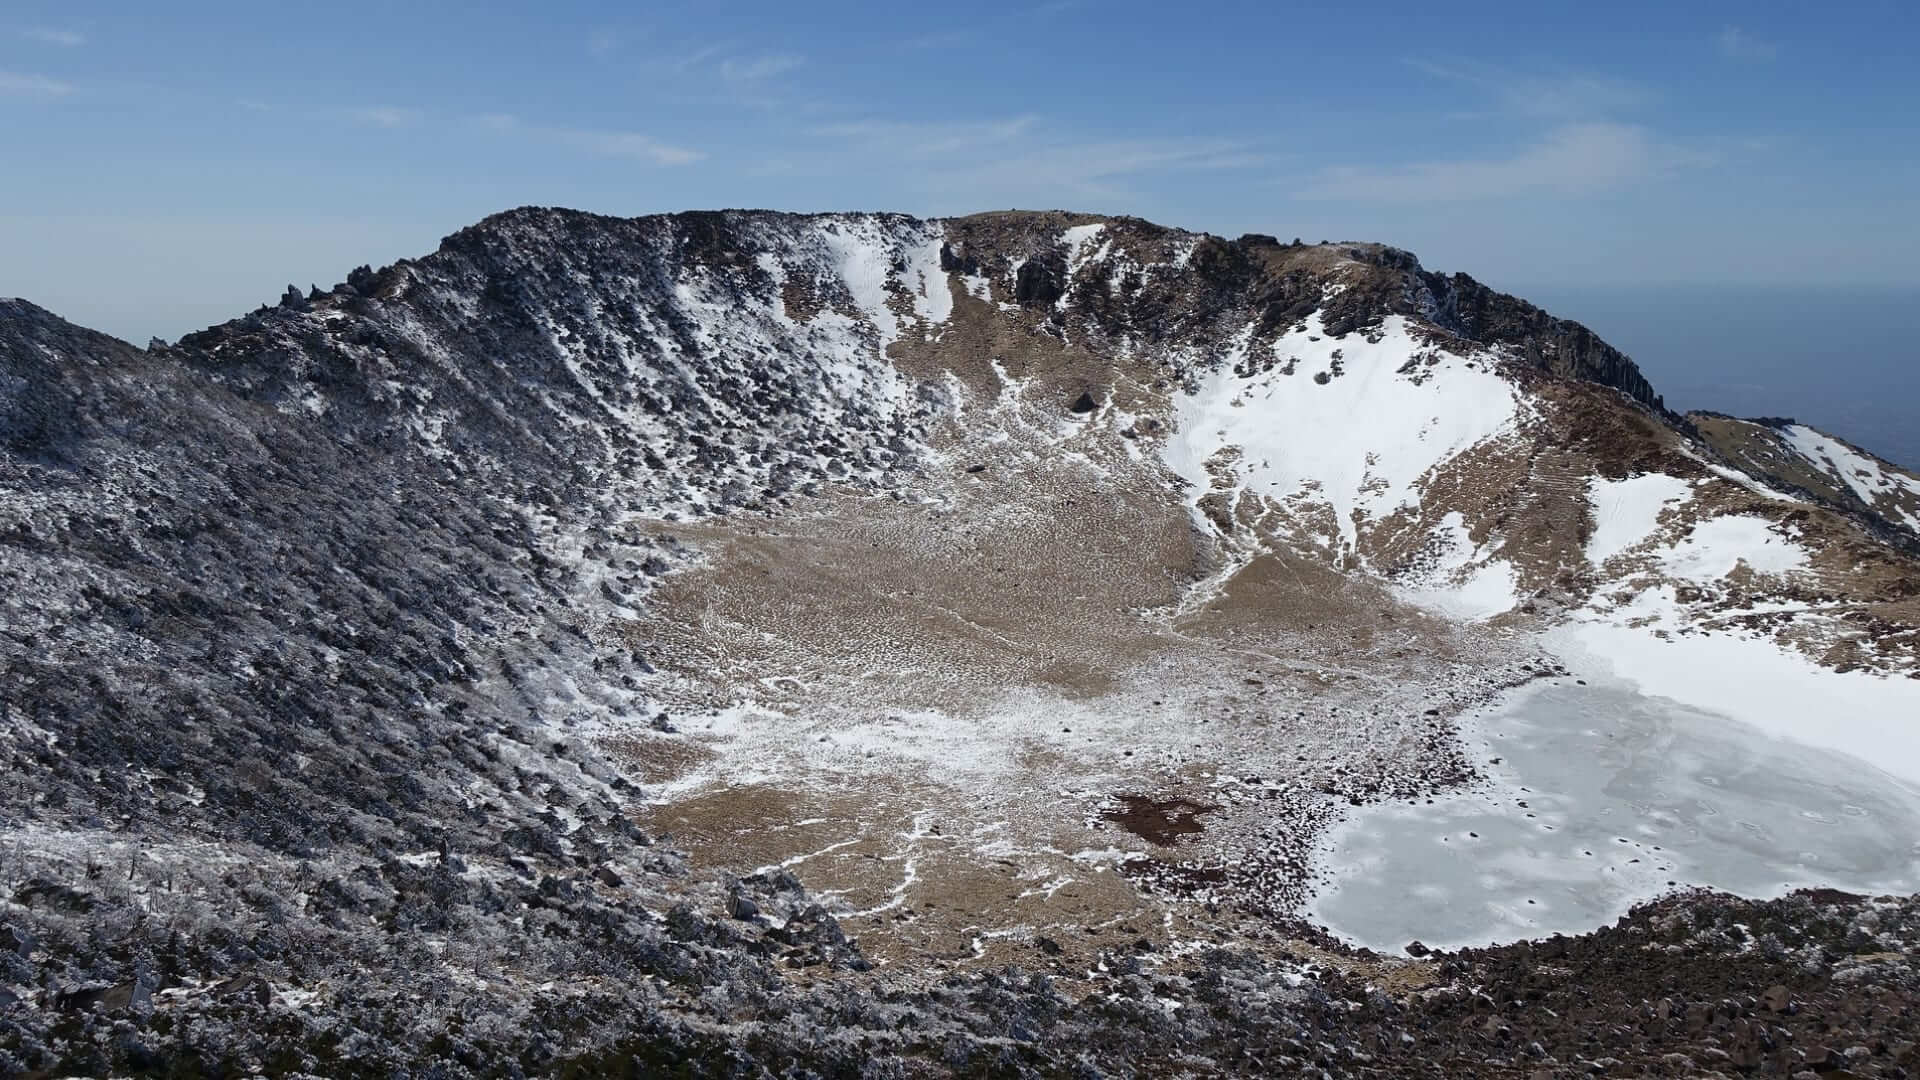 A crater with a lake and snow in it during winter on the Jeju Island.